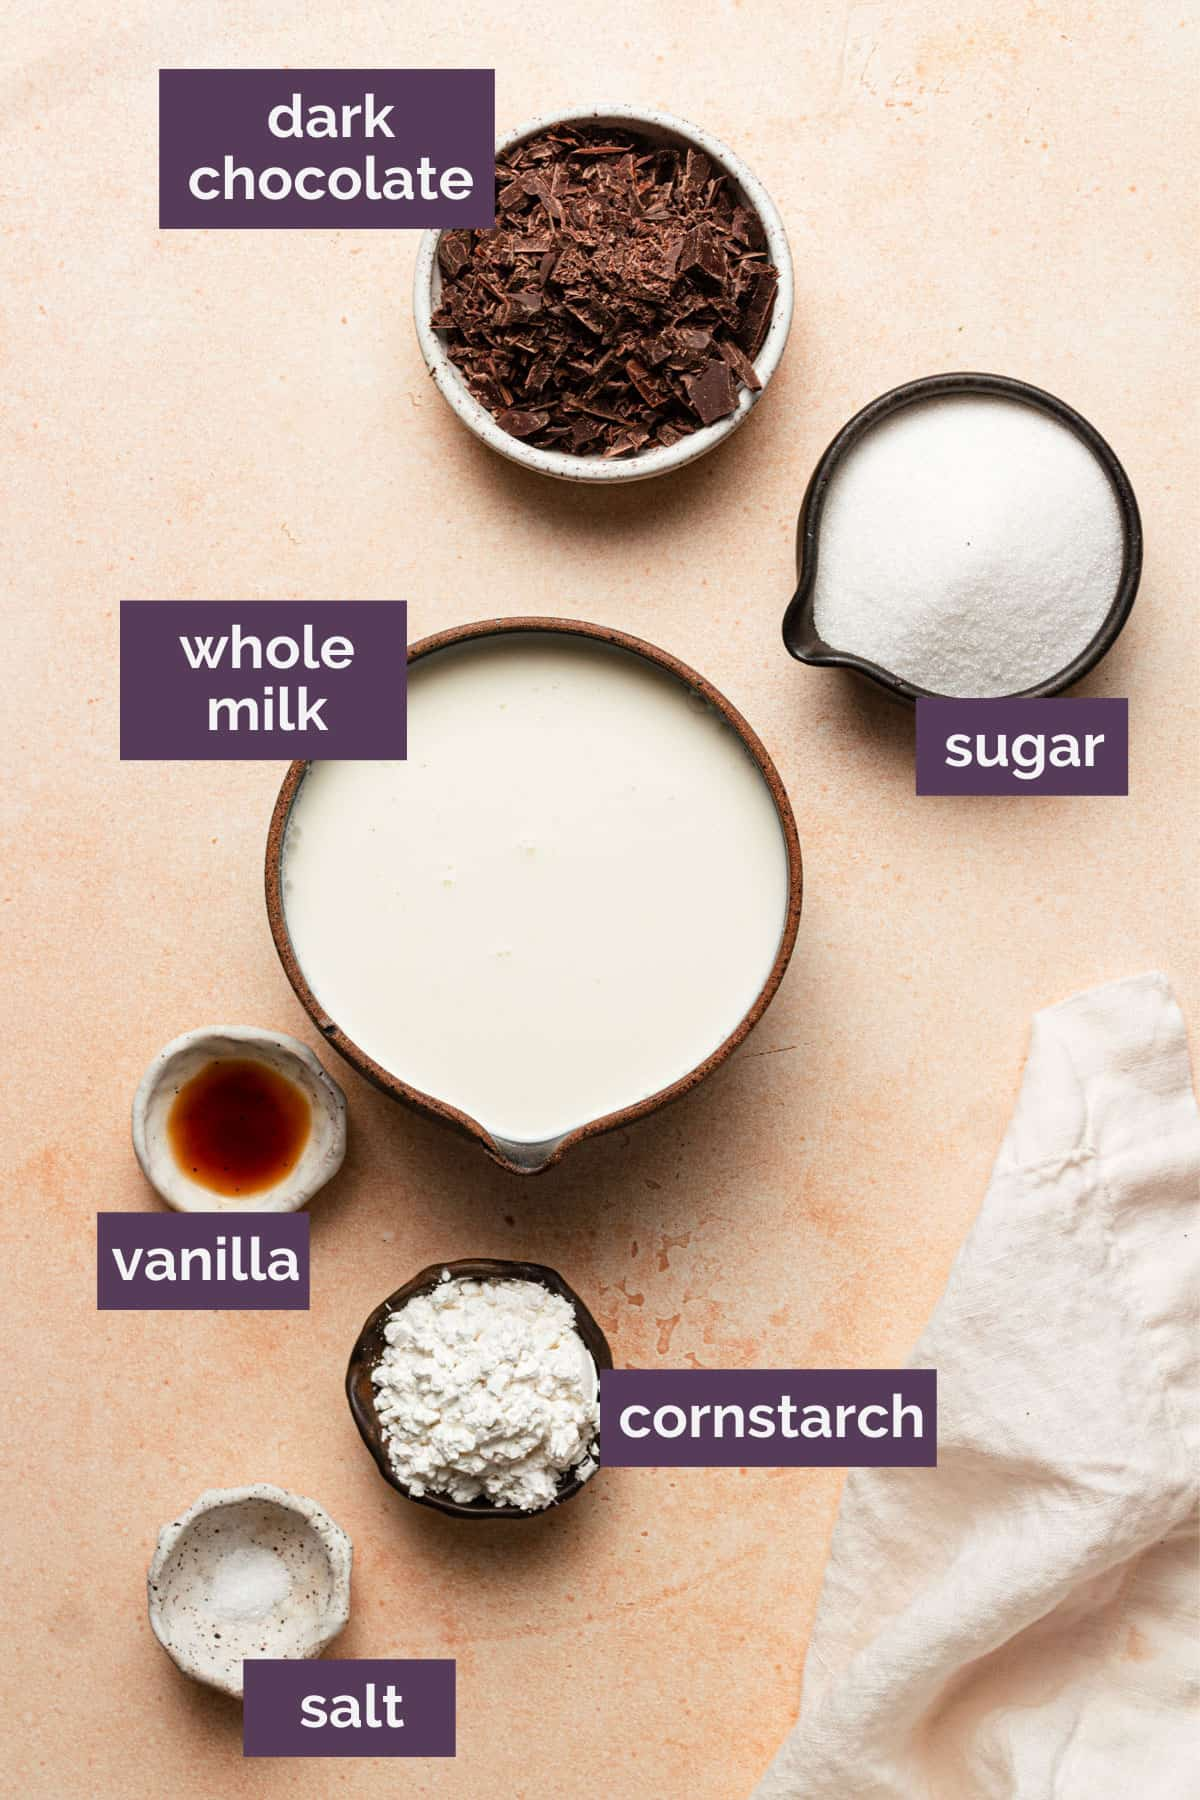 Top down photo of the ingredients for chocolate pudding with purple labels naming each ingredient.